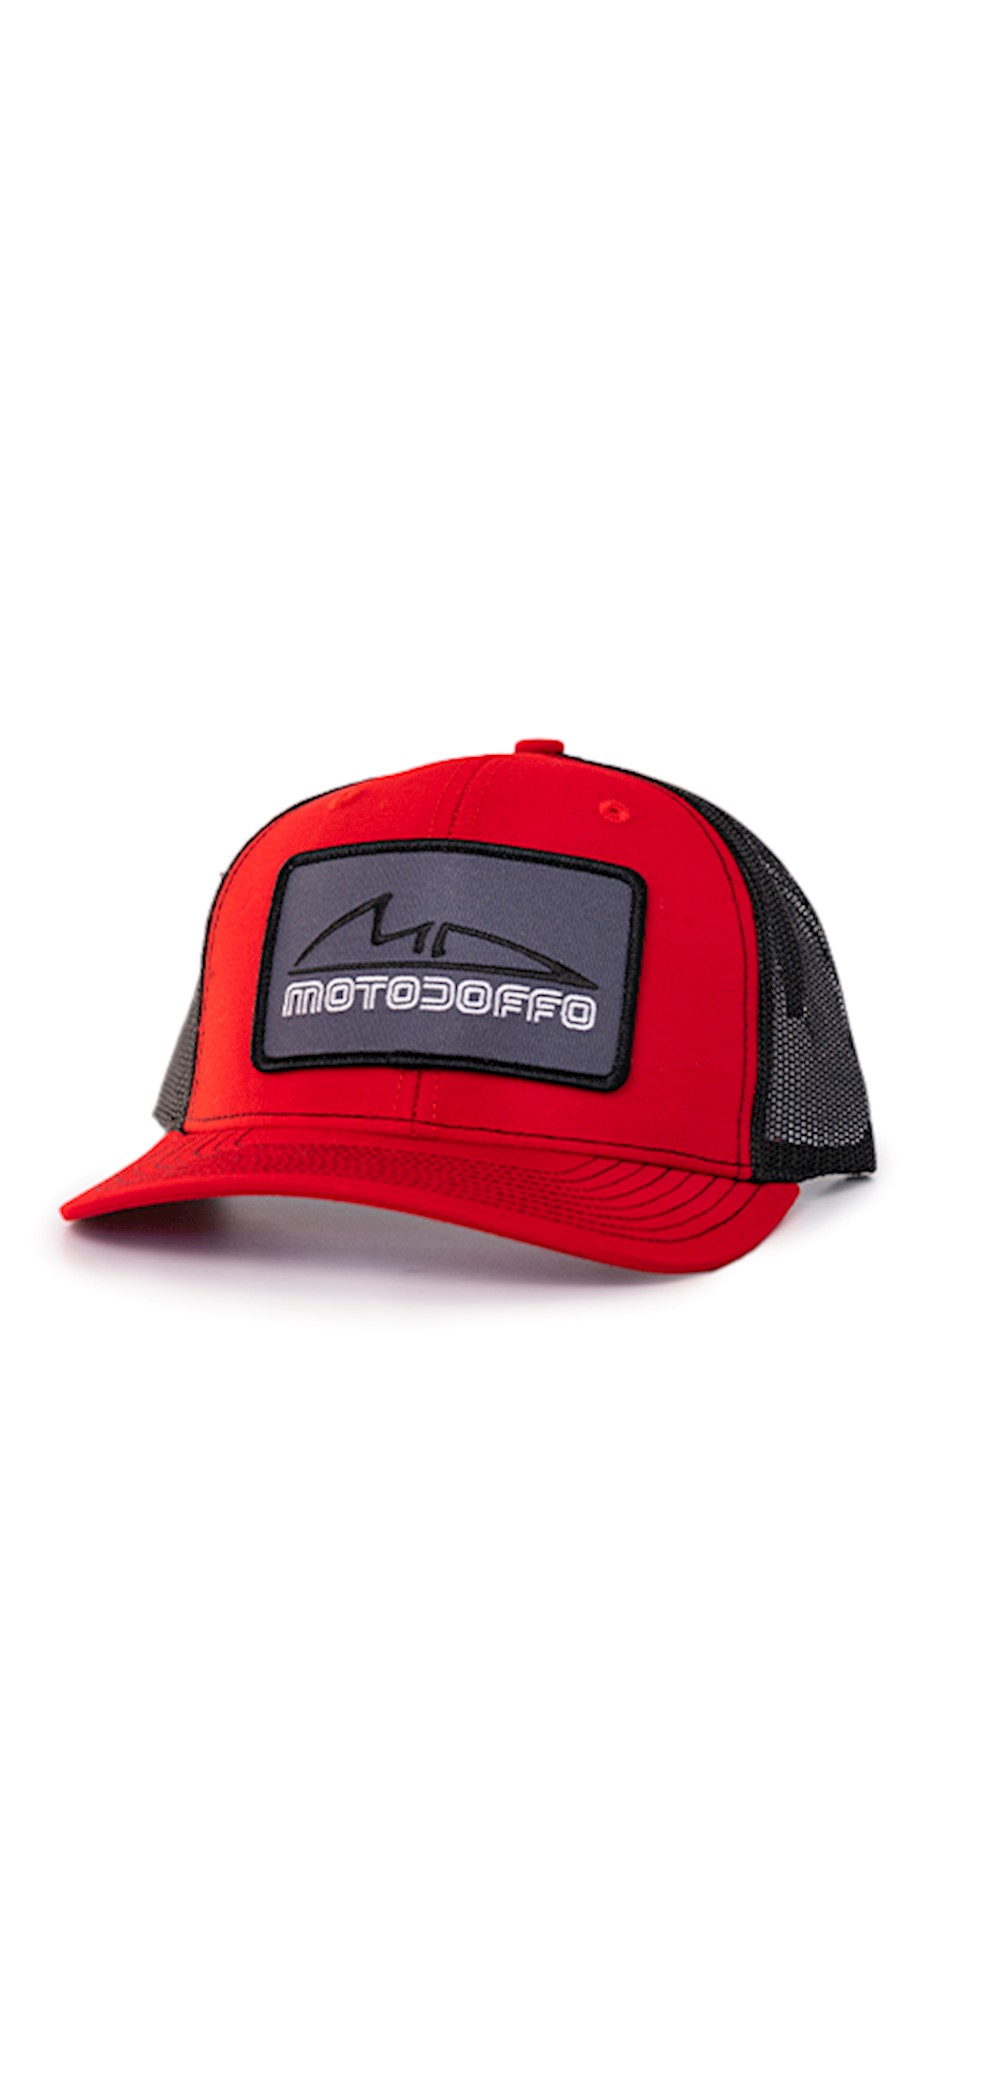 MotoDoffo Hat Red THUMBNAIL